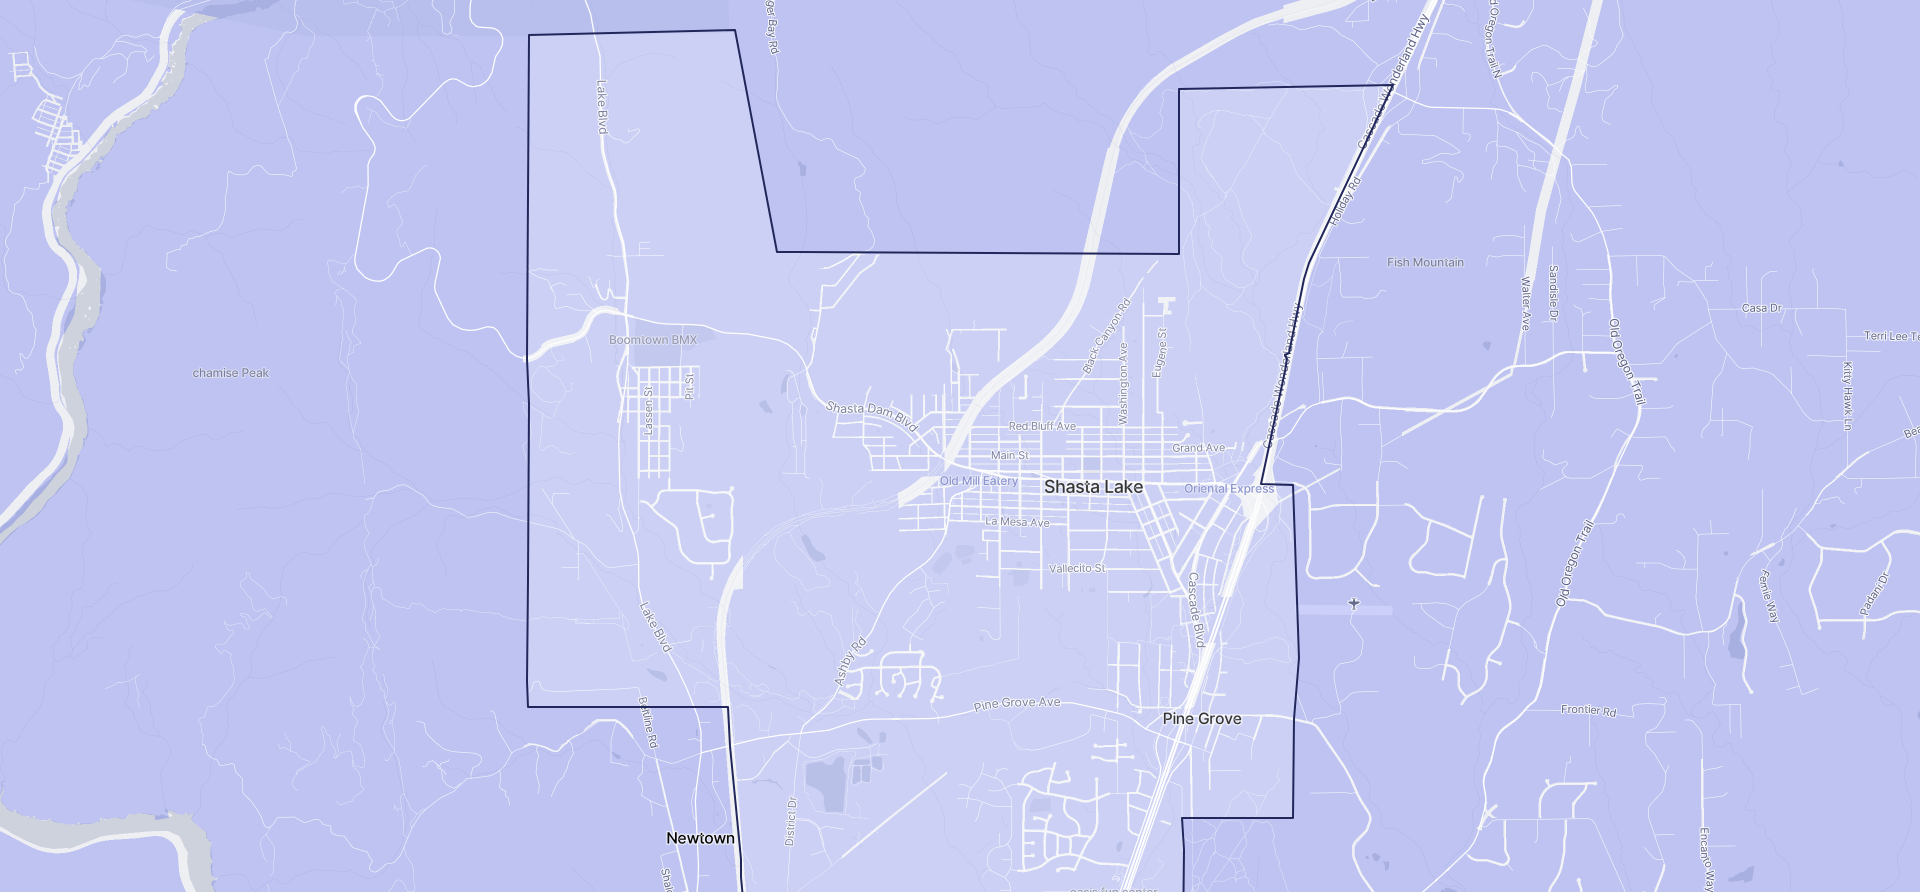 Image of Shasta Lake boundaries on a map.